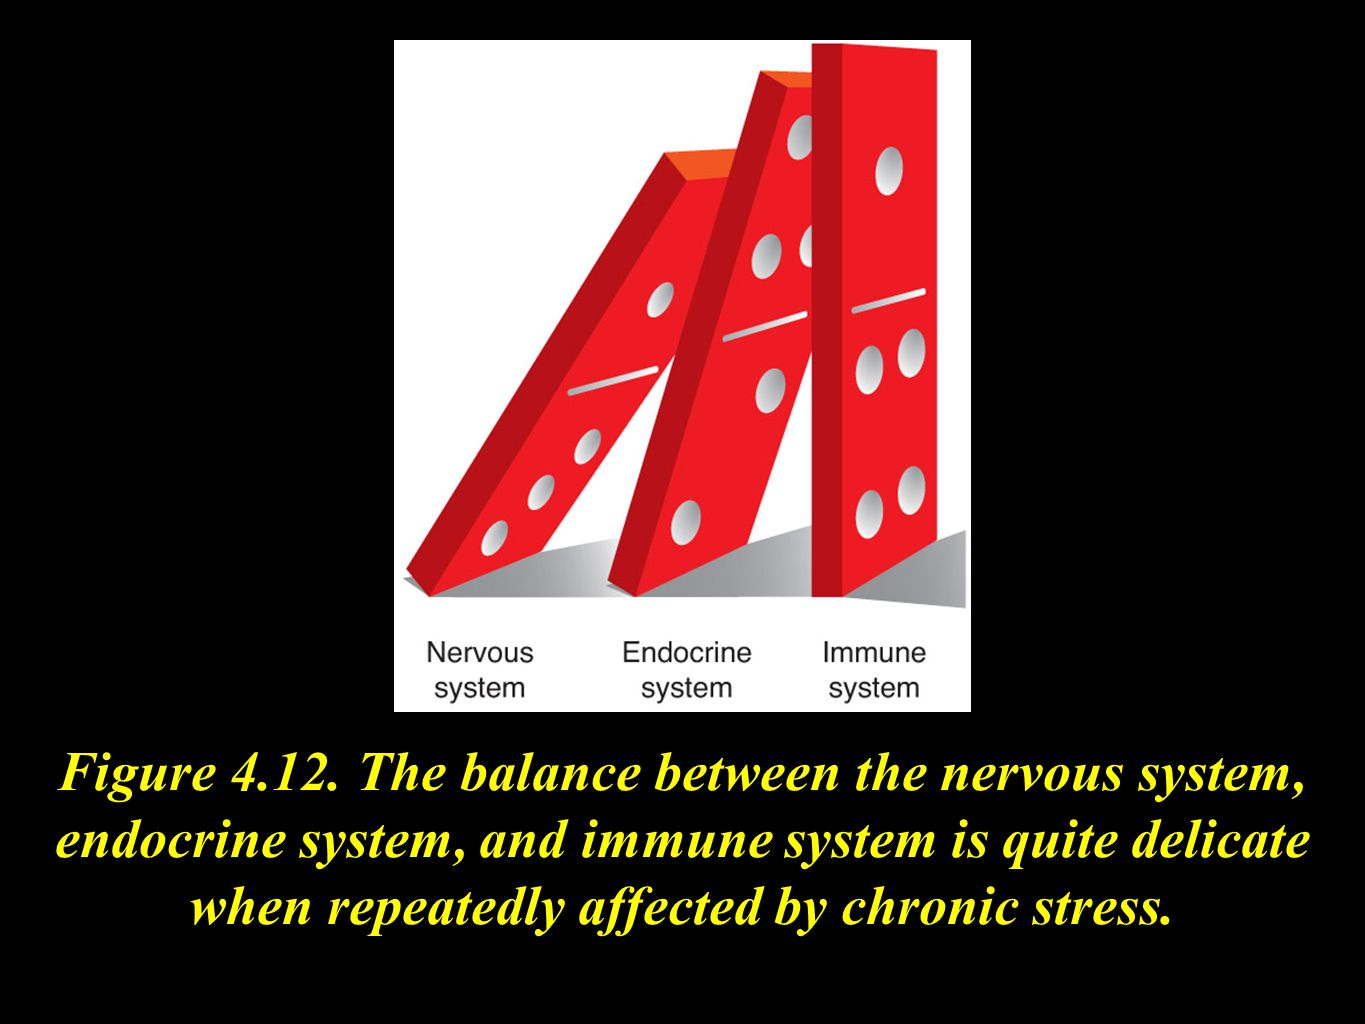 Figure 4.12. The balance between the nervous system, endocrine system, and immune system is quite delicate when repeatedly affected by chronic stress.